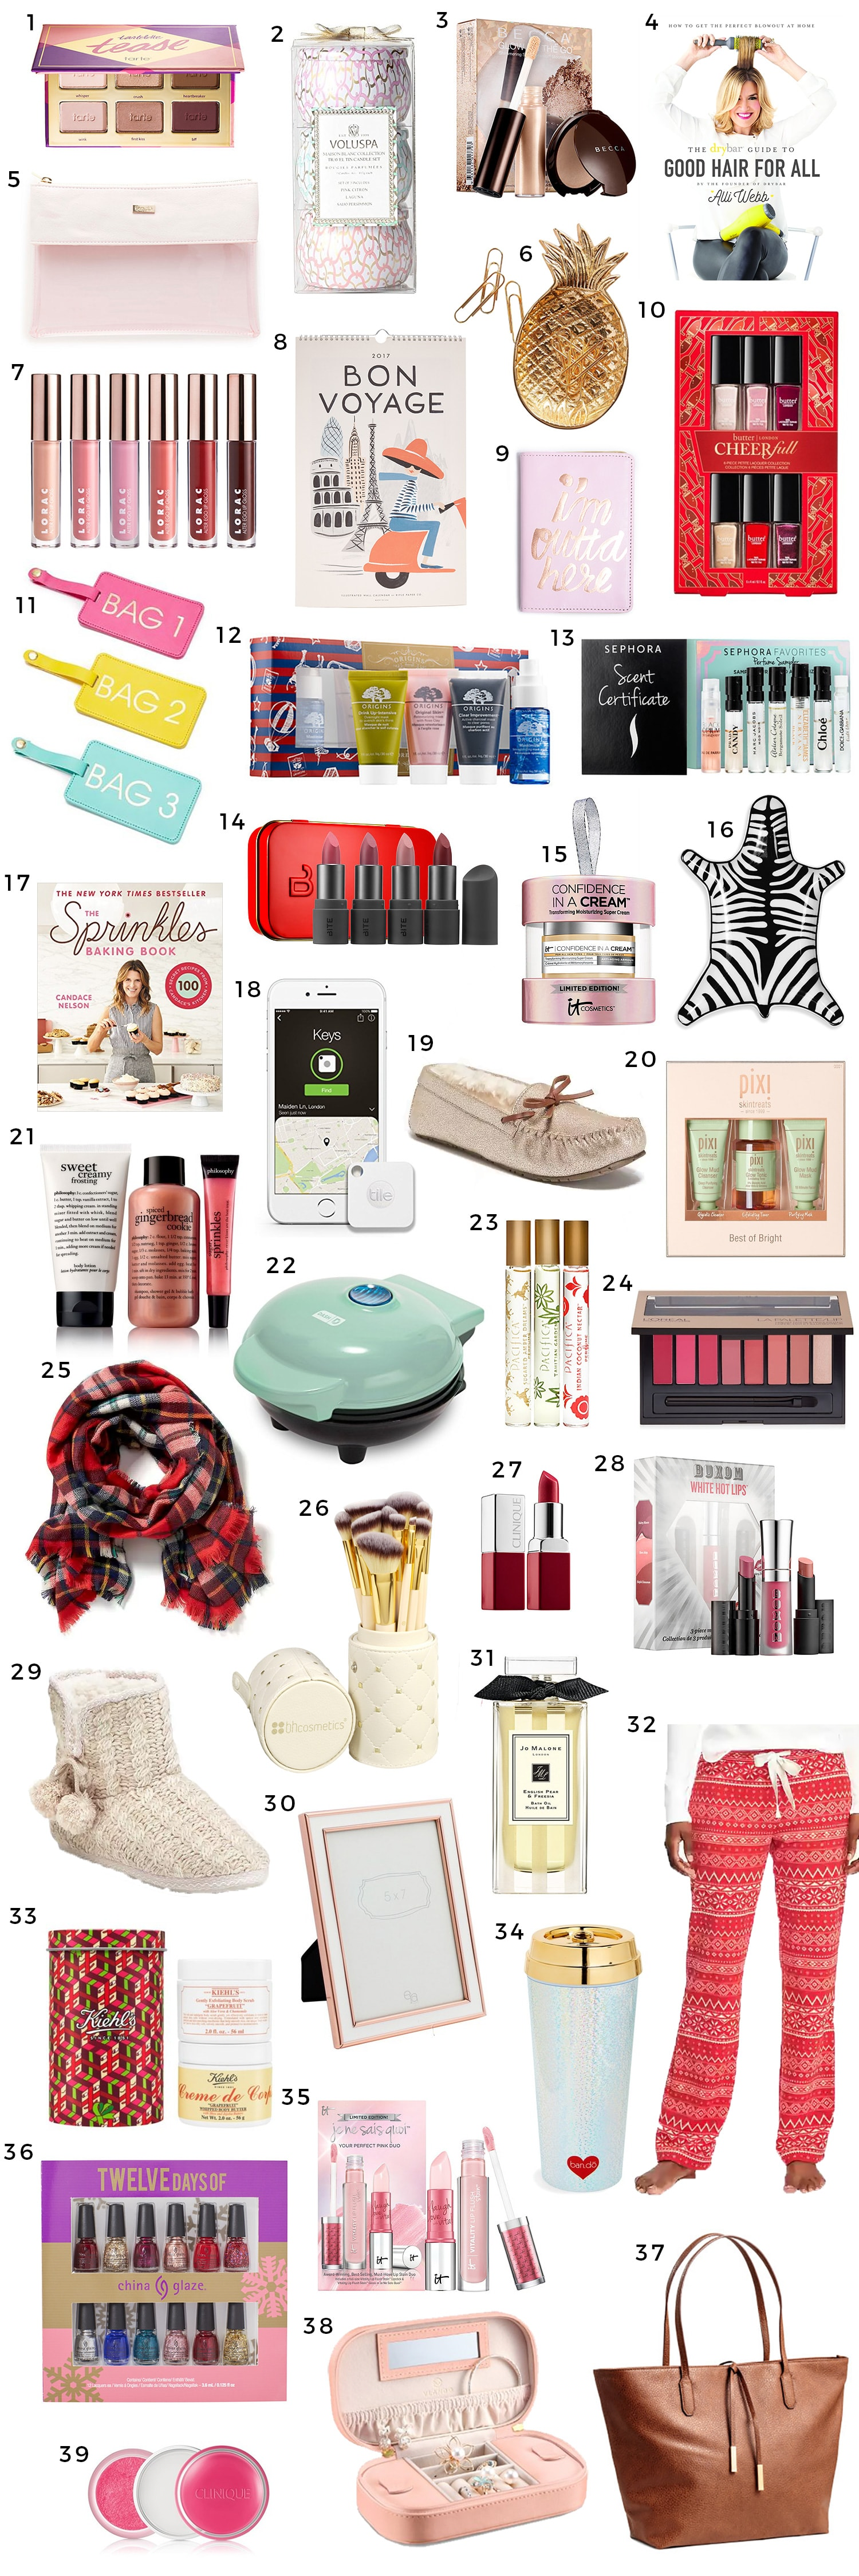 The Best Christmas Gift Ideas for Women under $25 | Ashley Brooke ...